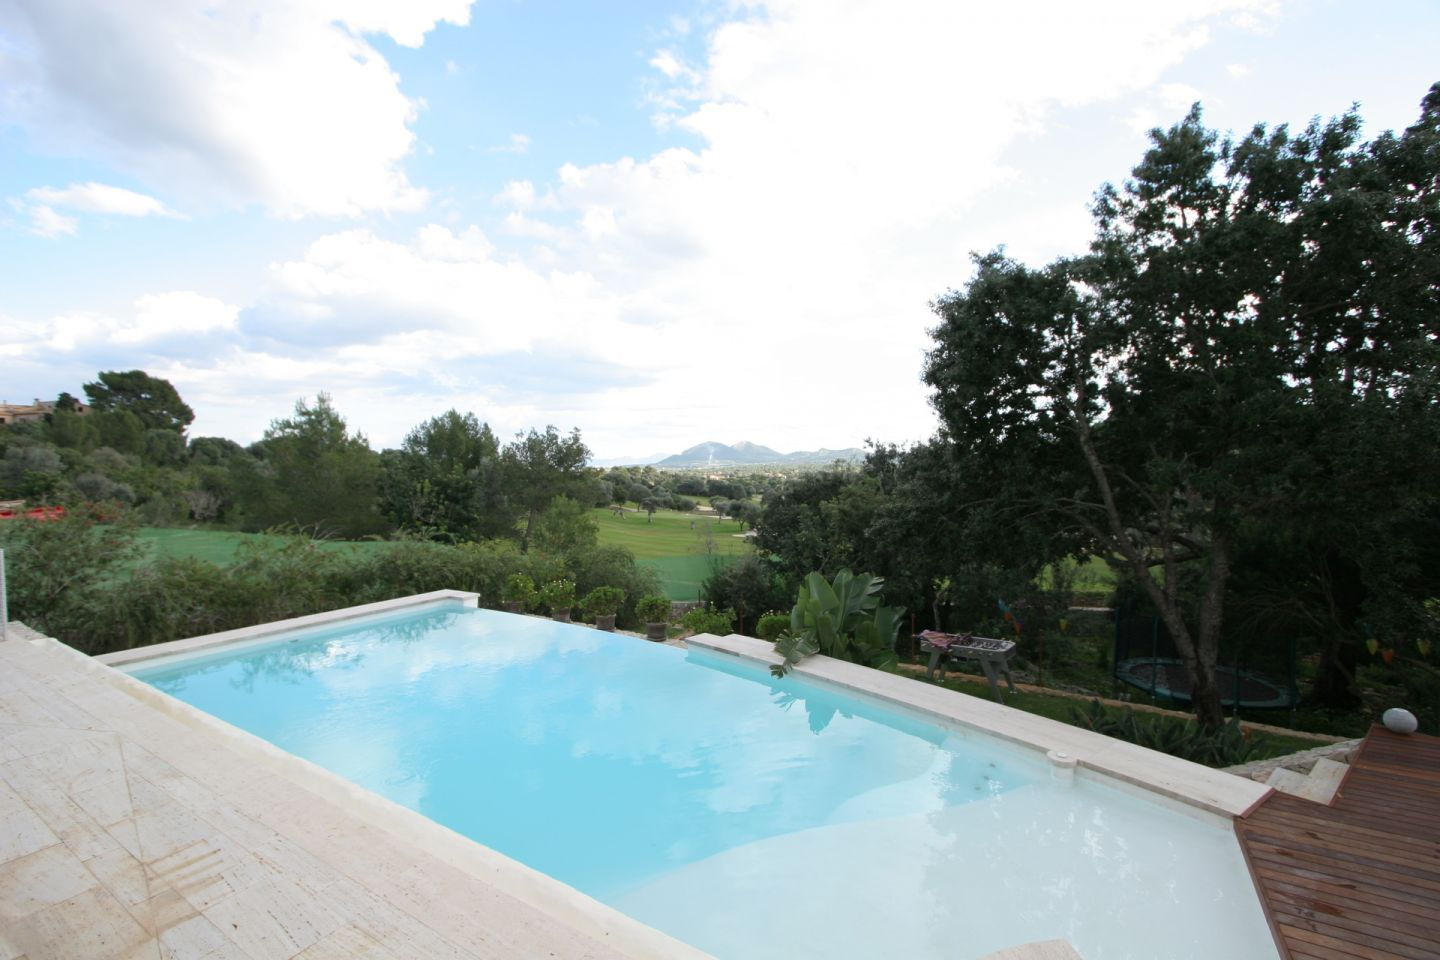 5 Bed Villa for sale in POLLENSA 2